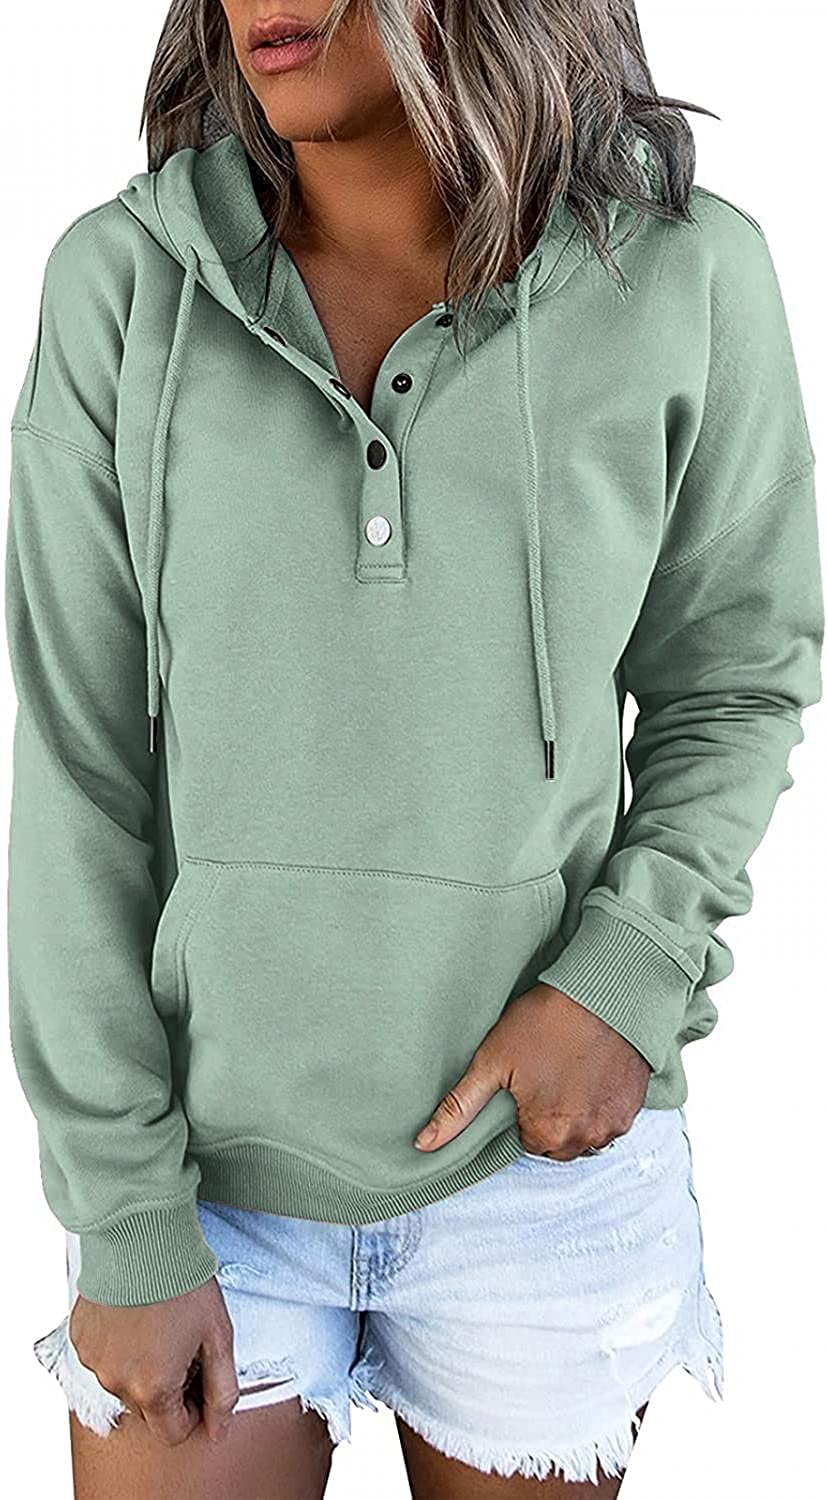 Pullover for Womens Button Down Hoodies Drawstring Hooded Pocket Casual Long Sleeve Shirts V Neck Sweatshirts